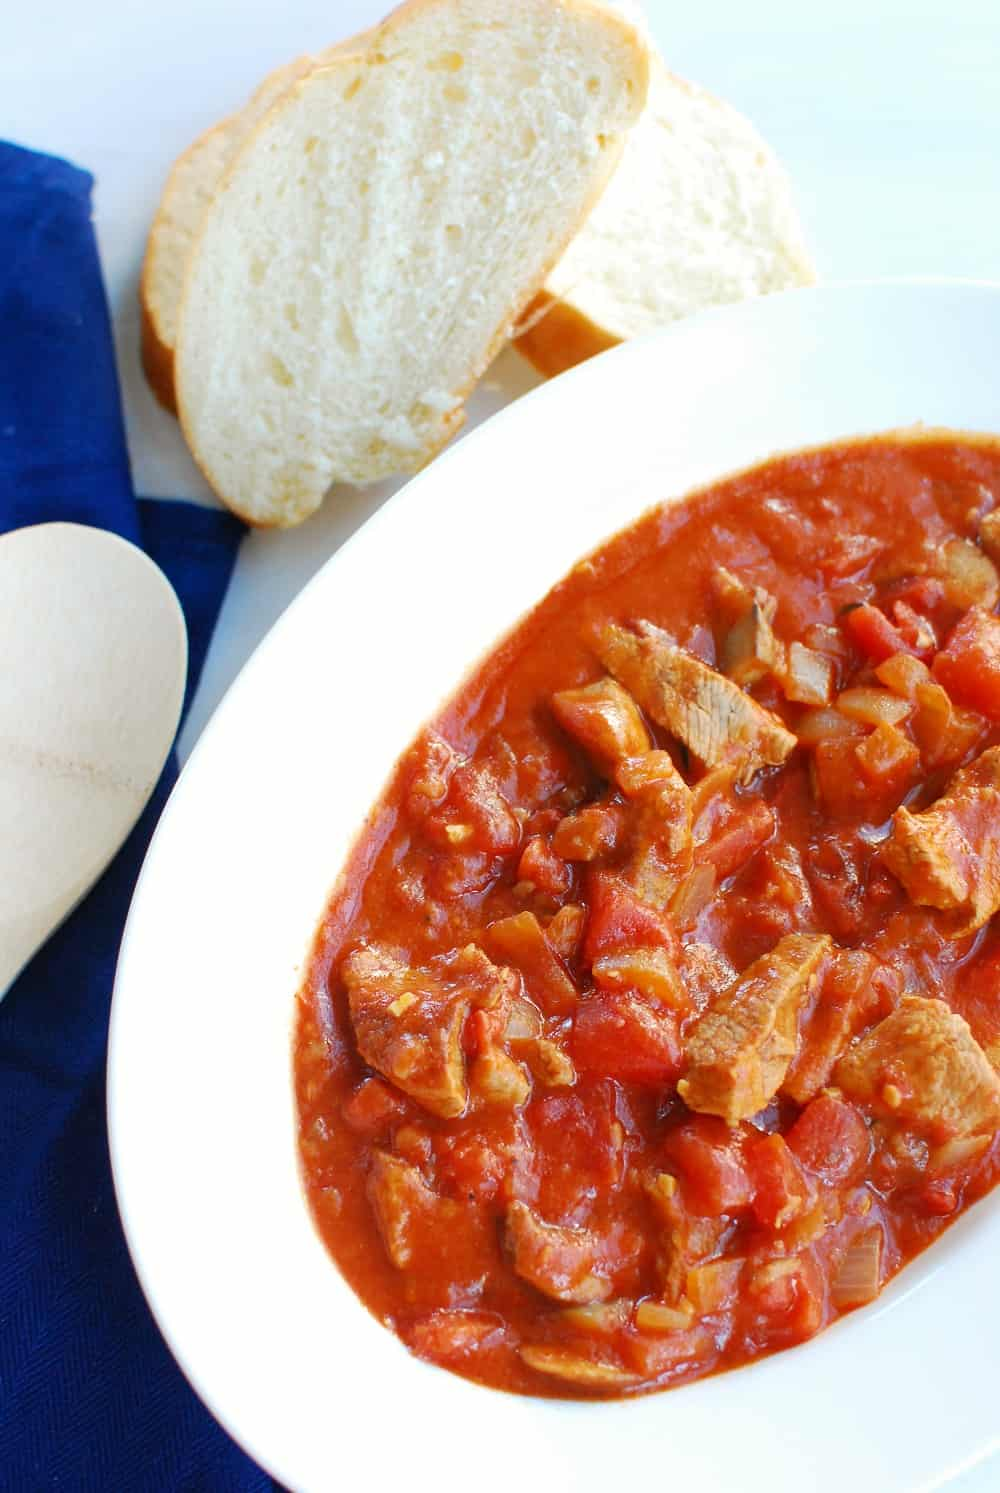 A large bowl full of veal marengo stew next to french bread